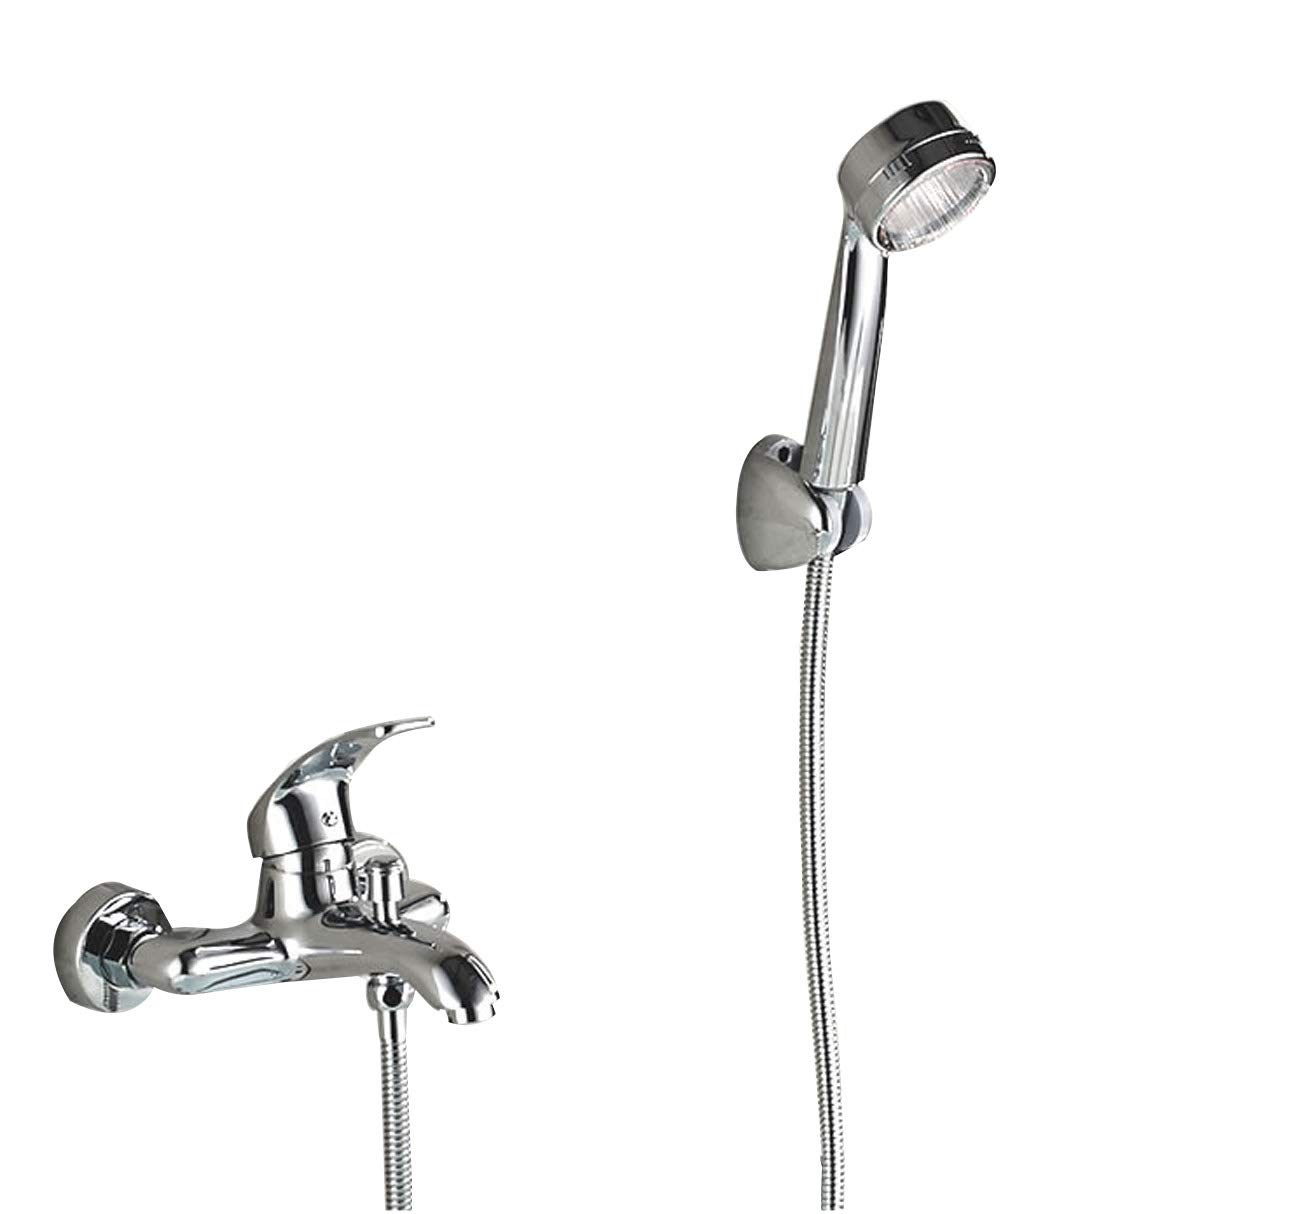 Simple Shower Mixer Set In Bathroom Wall Mounted Shower System With Handheld Shower + Shower Tap,Bath Hardware Accessories